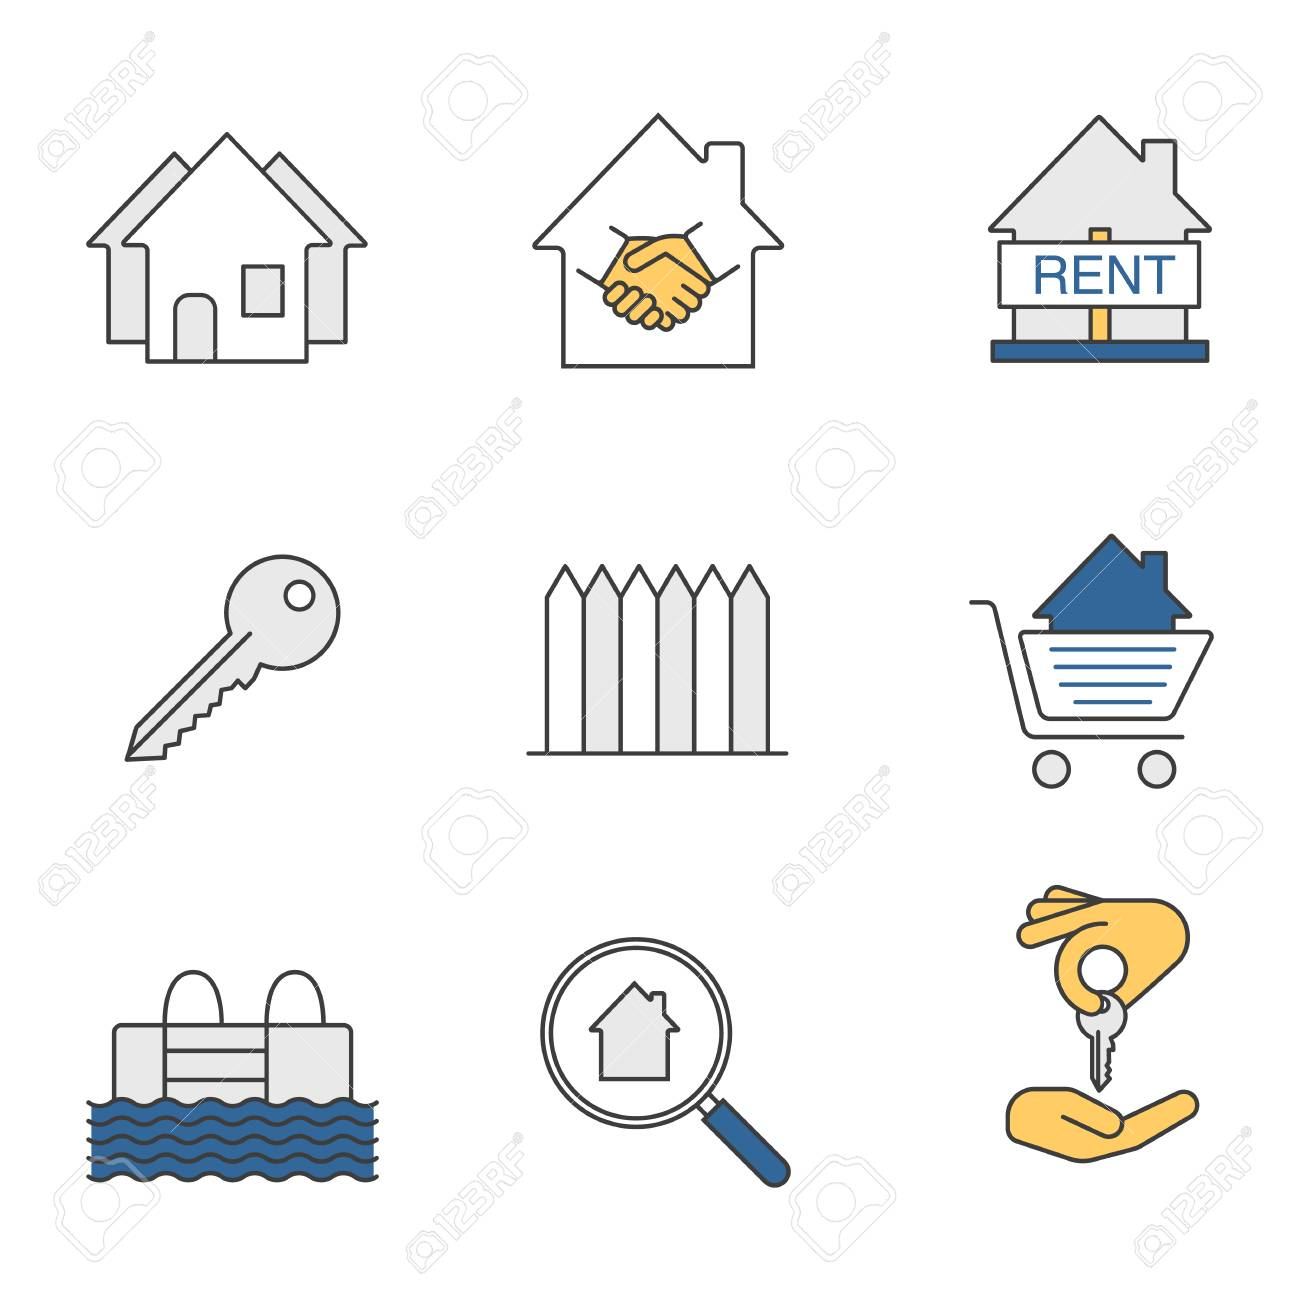 Real estate market color icons set  Neighborhood, house for rent,